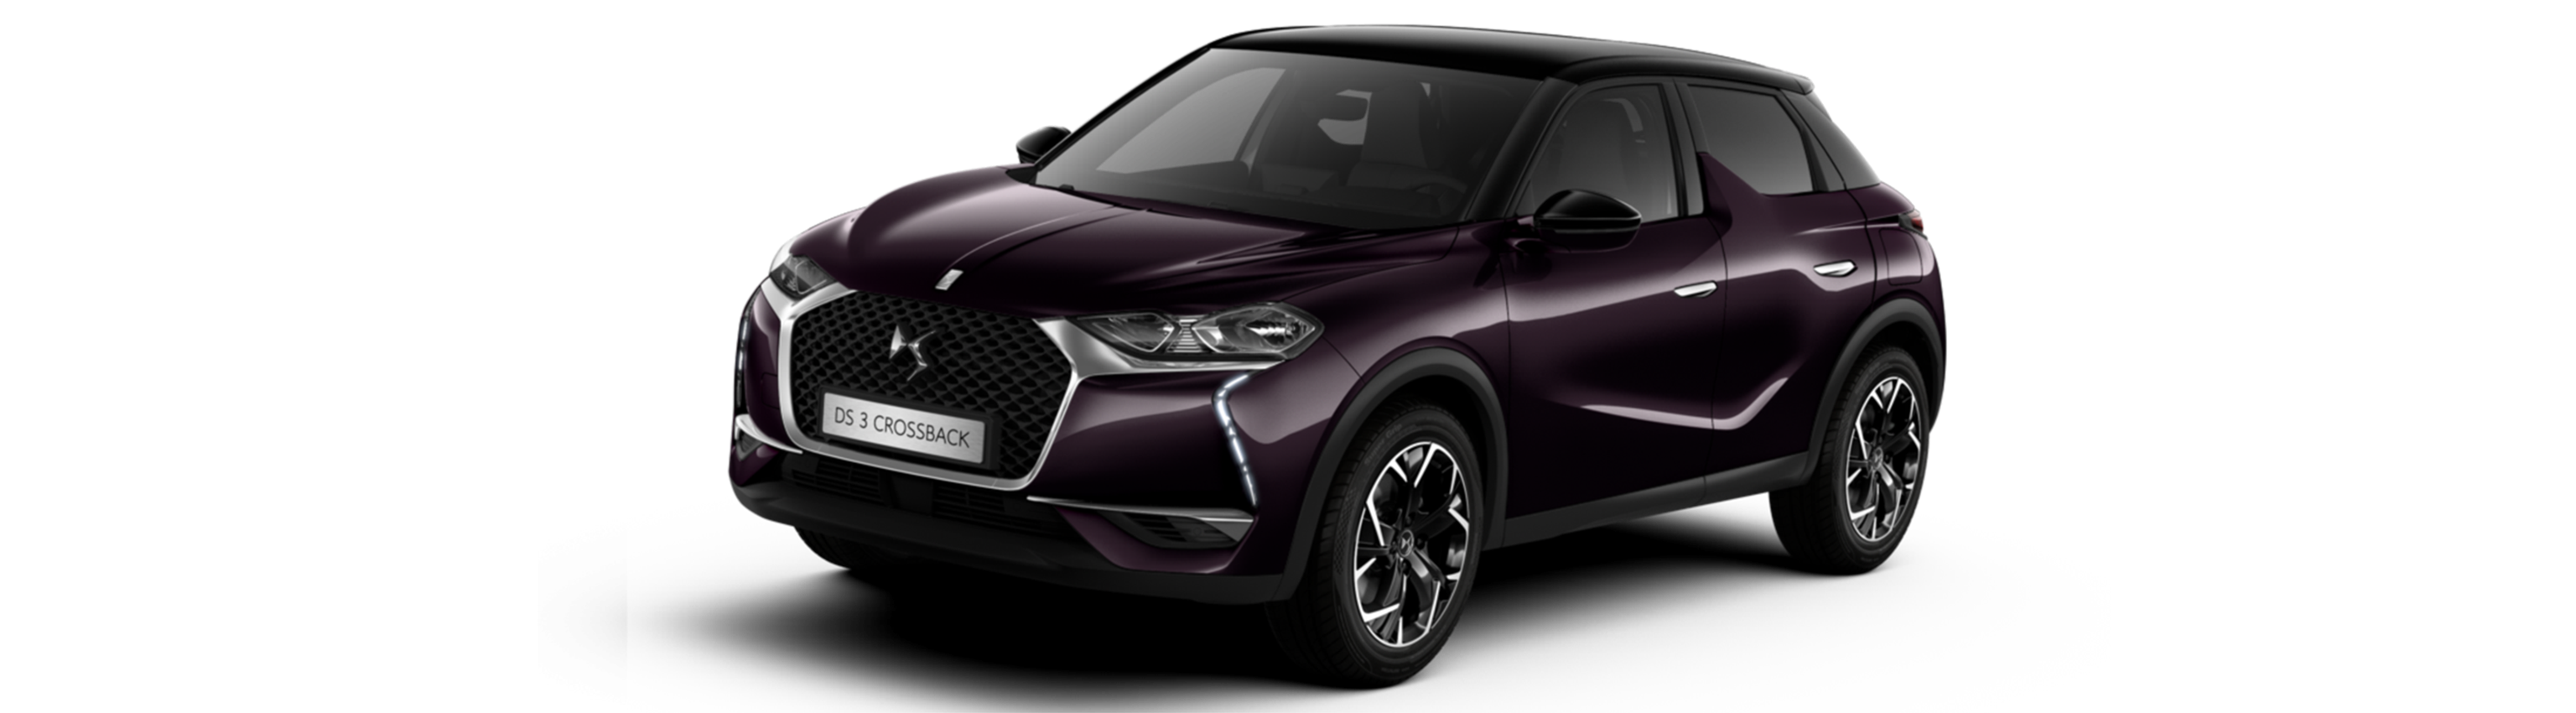 DS 3 CROSSBACK Business